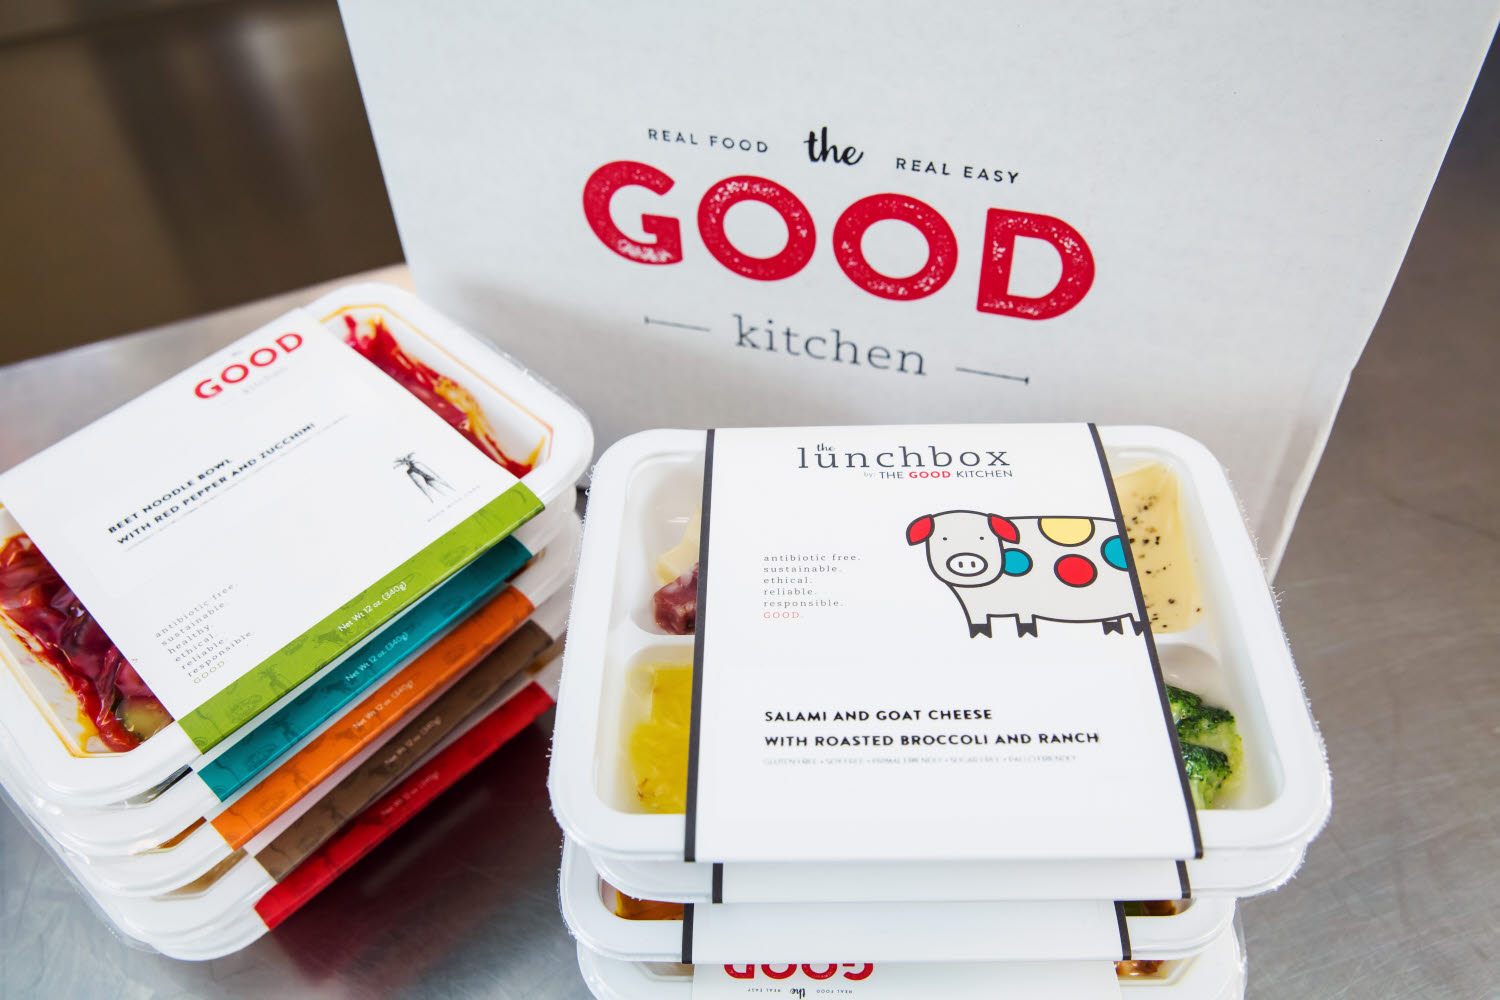 The Good Kitchen packaging